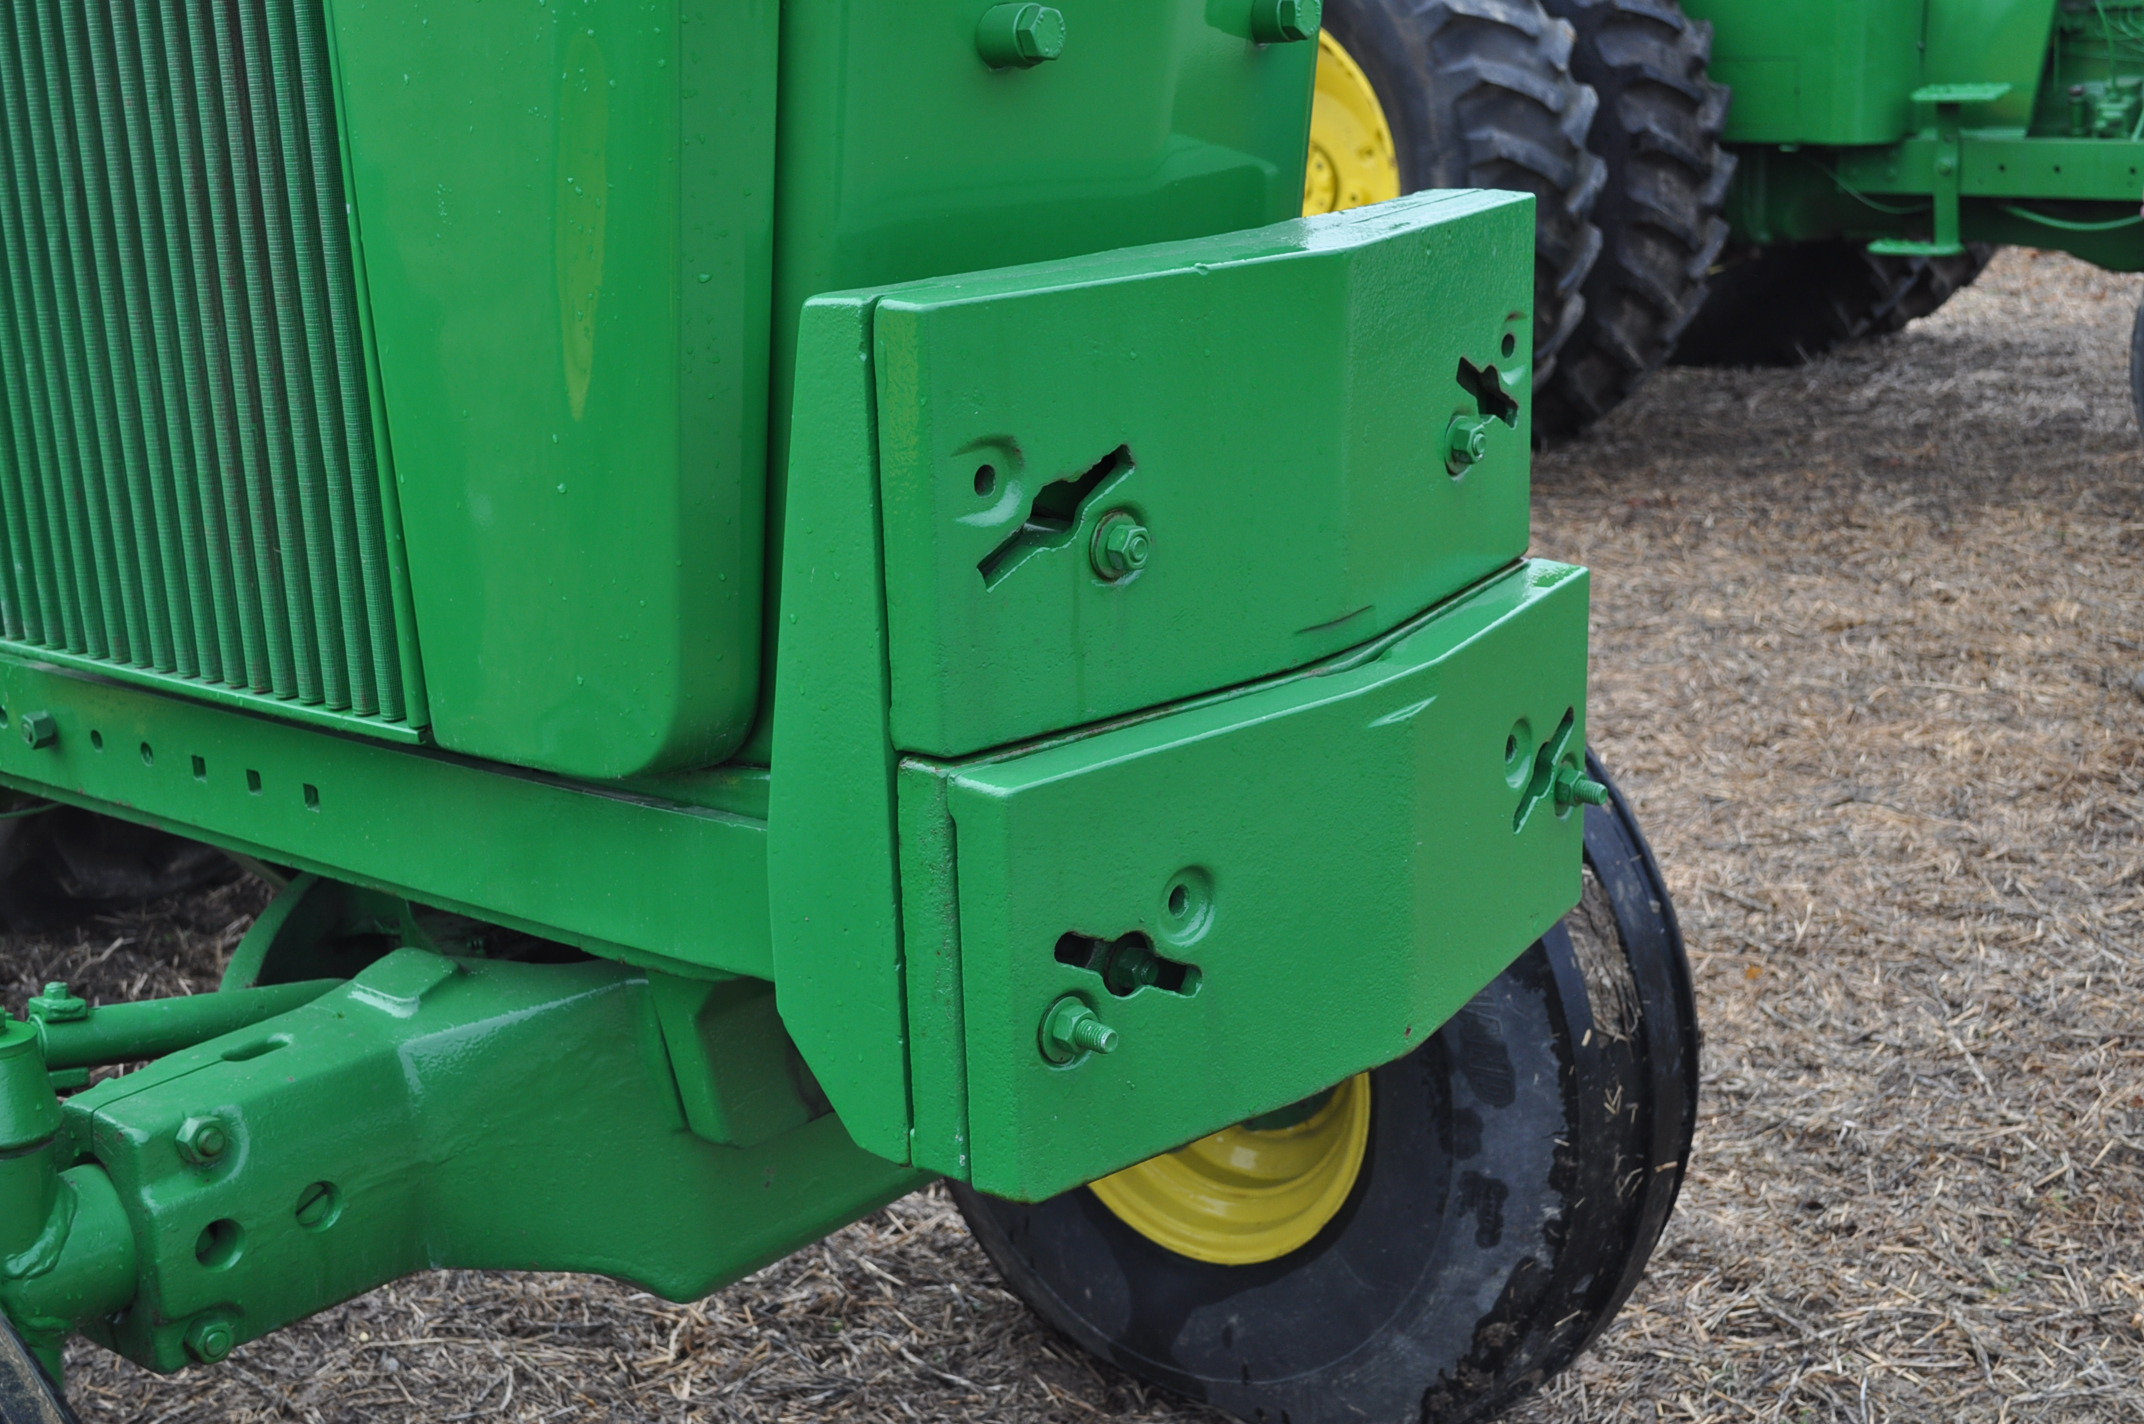 John Deere 4520 tractor, ***4520 frame with 4620 engine**** diesel, 18.4-38 new inside rear - Image 13 of 17